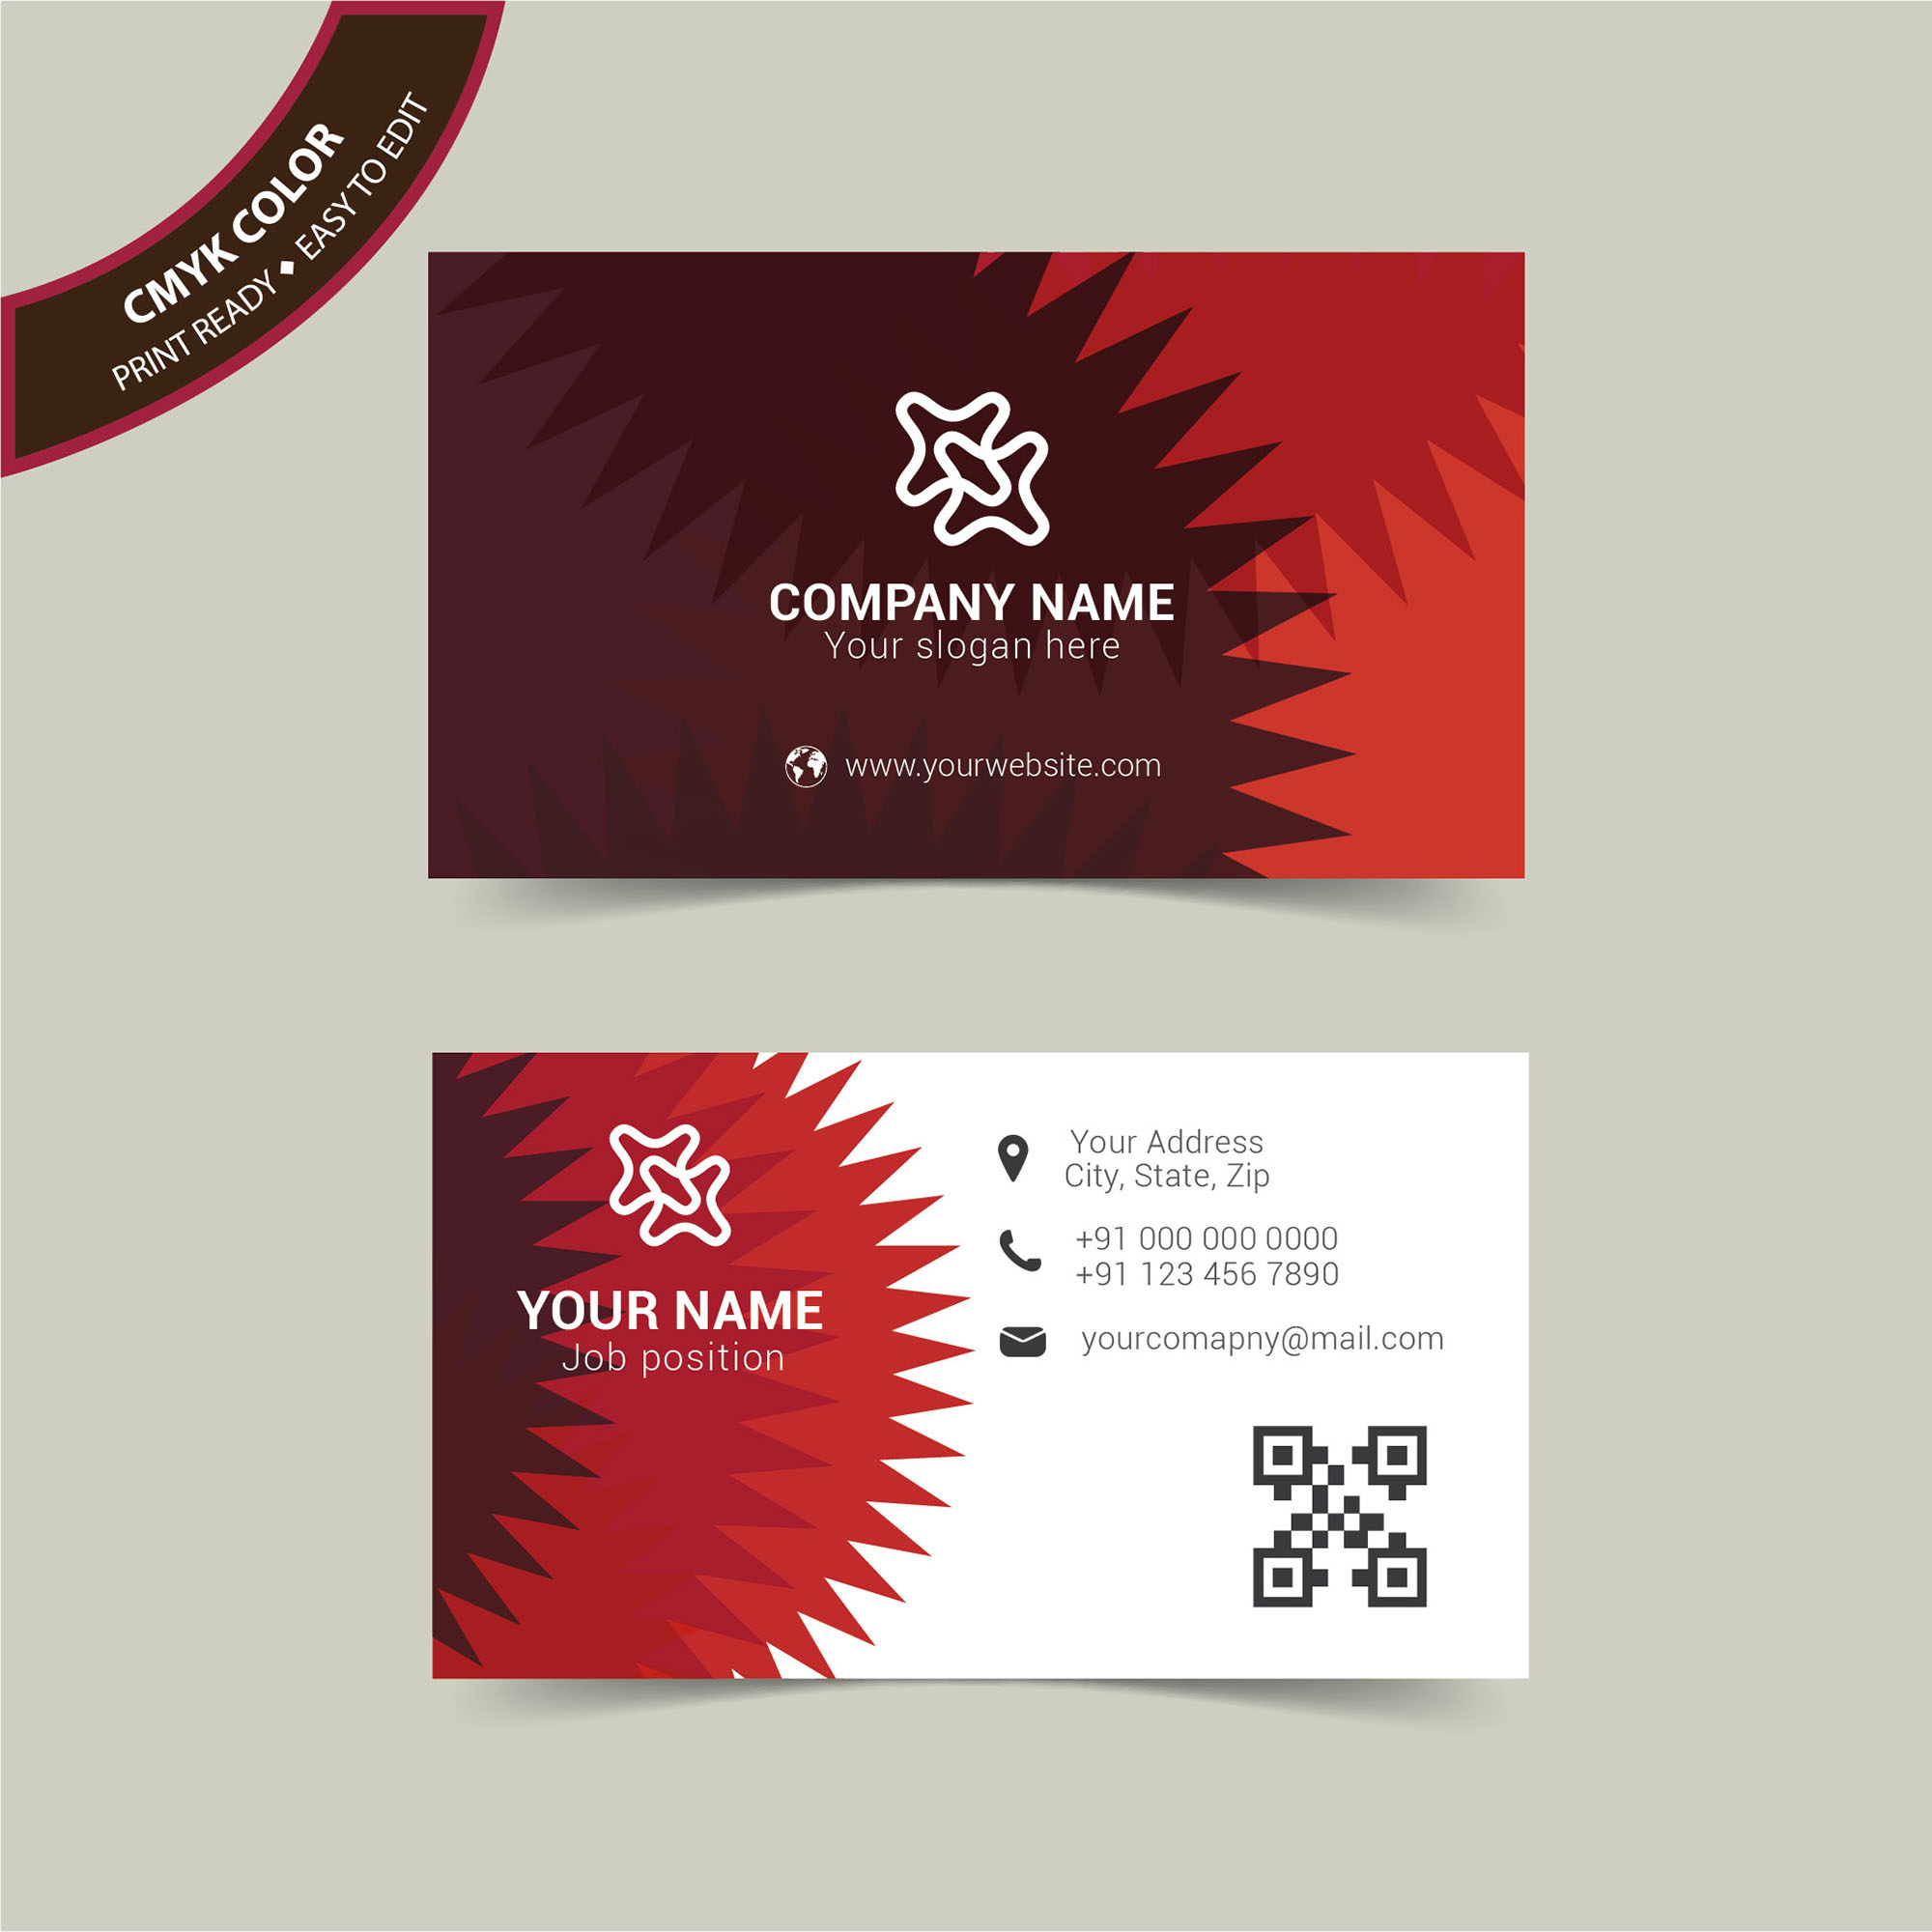 Abstract professional business card free download wisxi business card business cards business card design business card template design templates wajeb